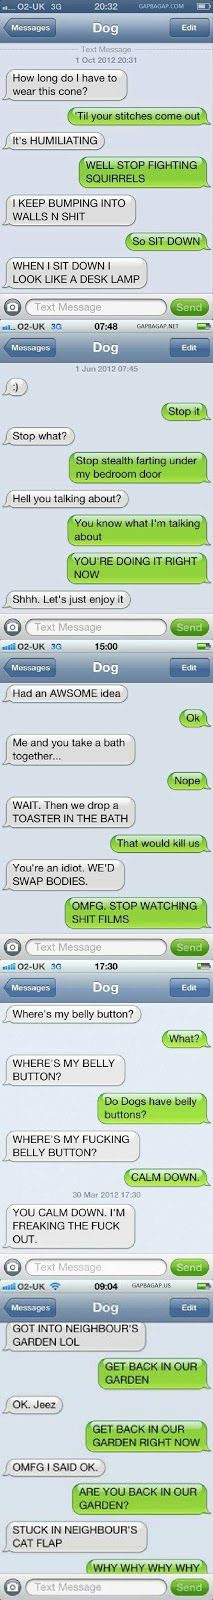 Top 10 Funniest Text Messages ft. Funny Dogs